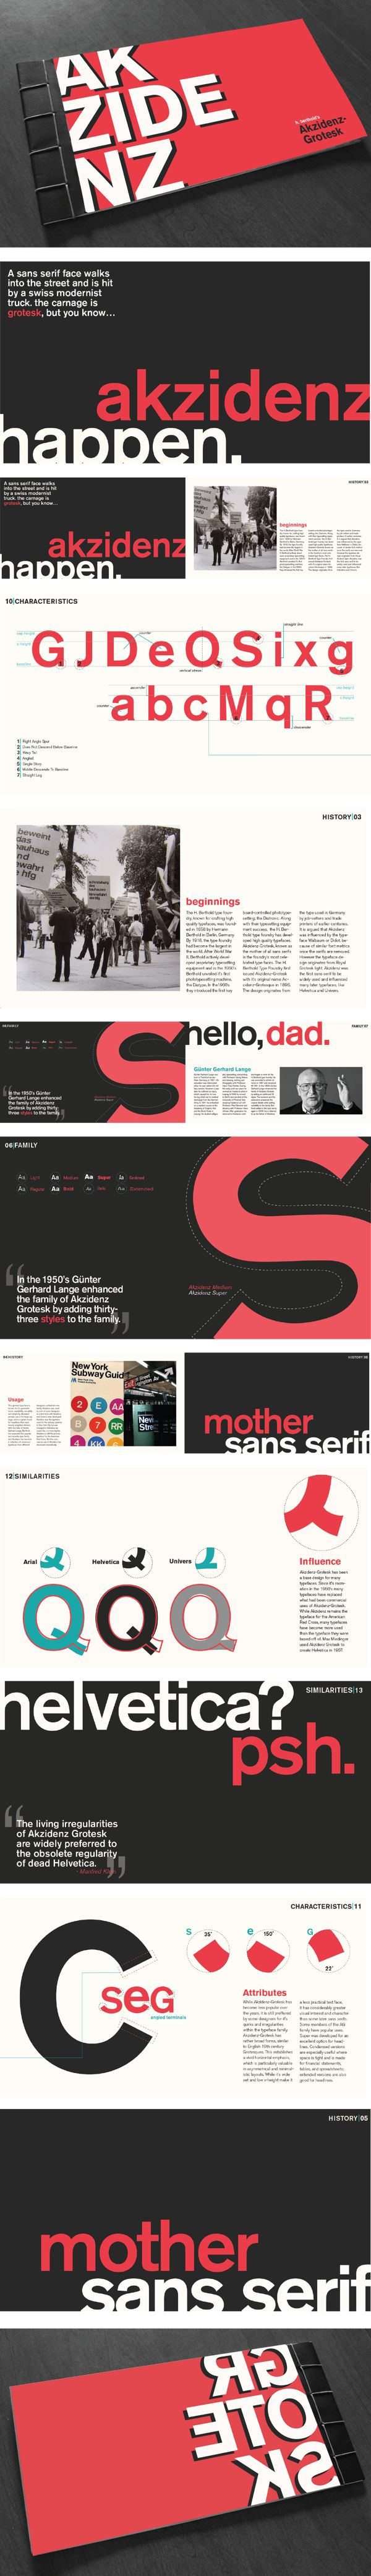 Akzidenz-Grotesk Typeface History Book by Kendra Hacker, via Behance